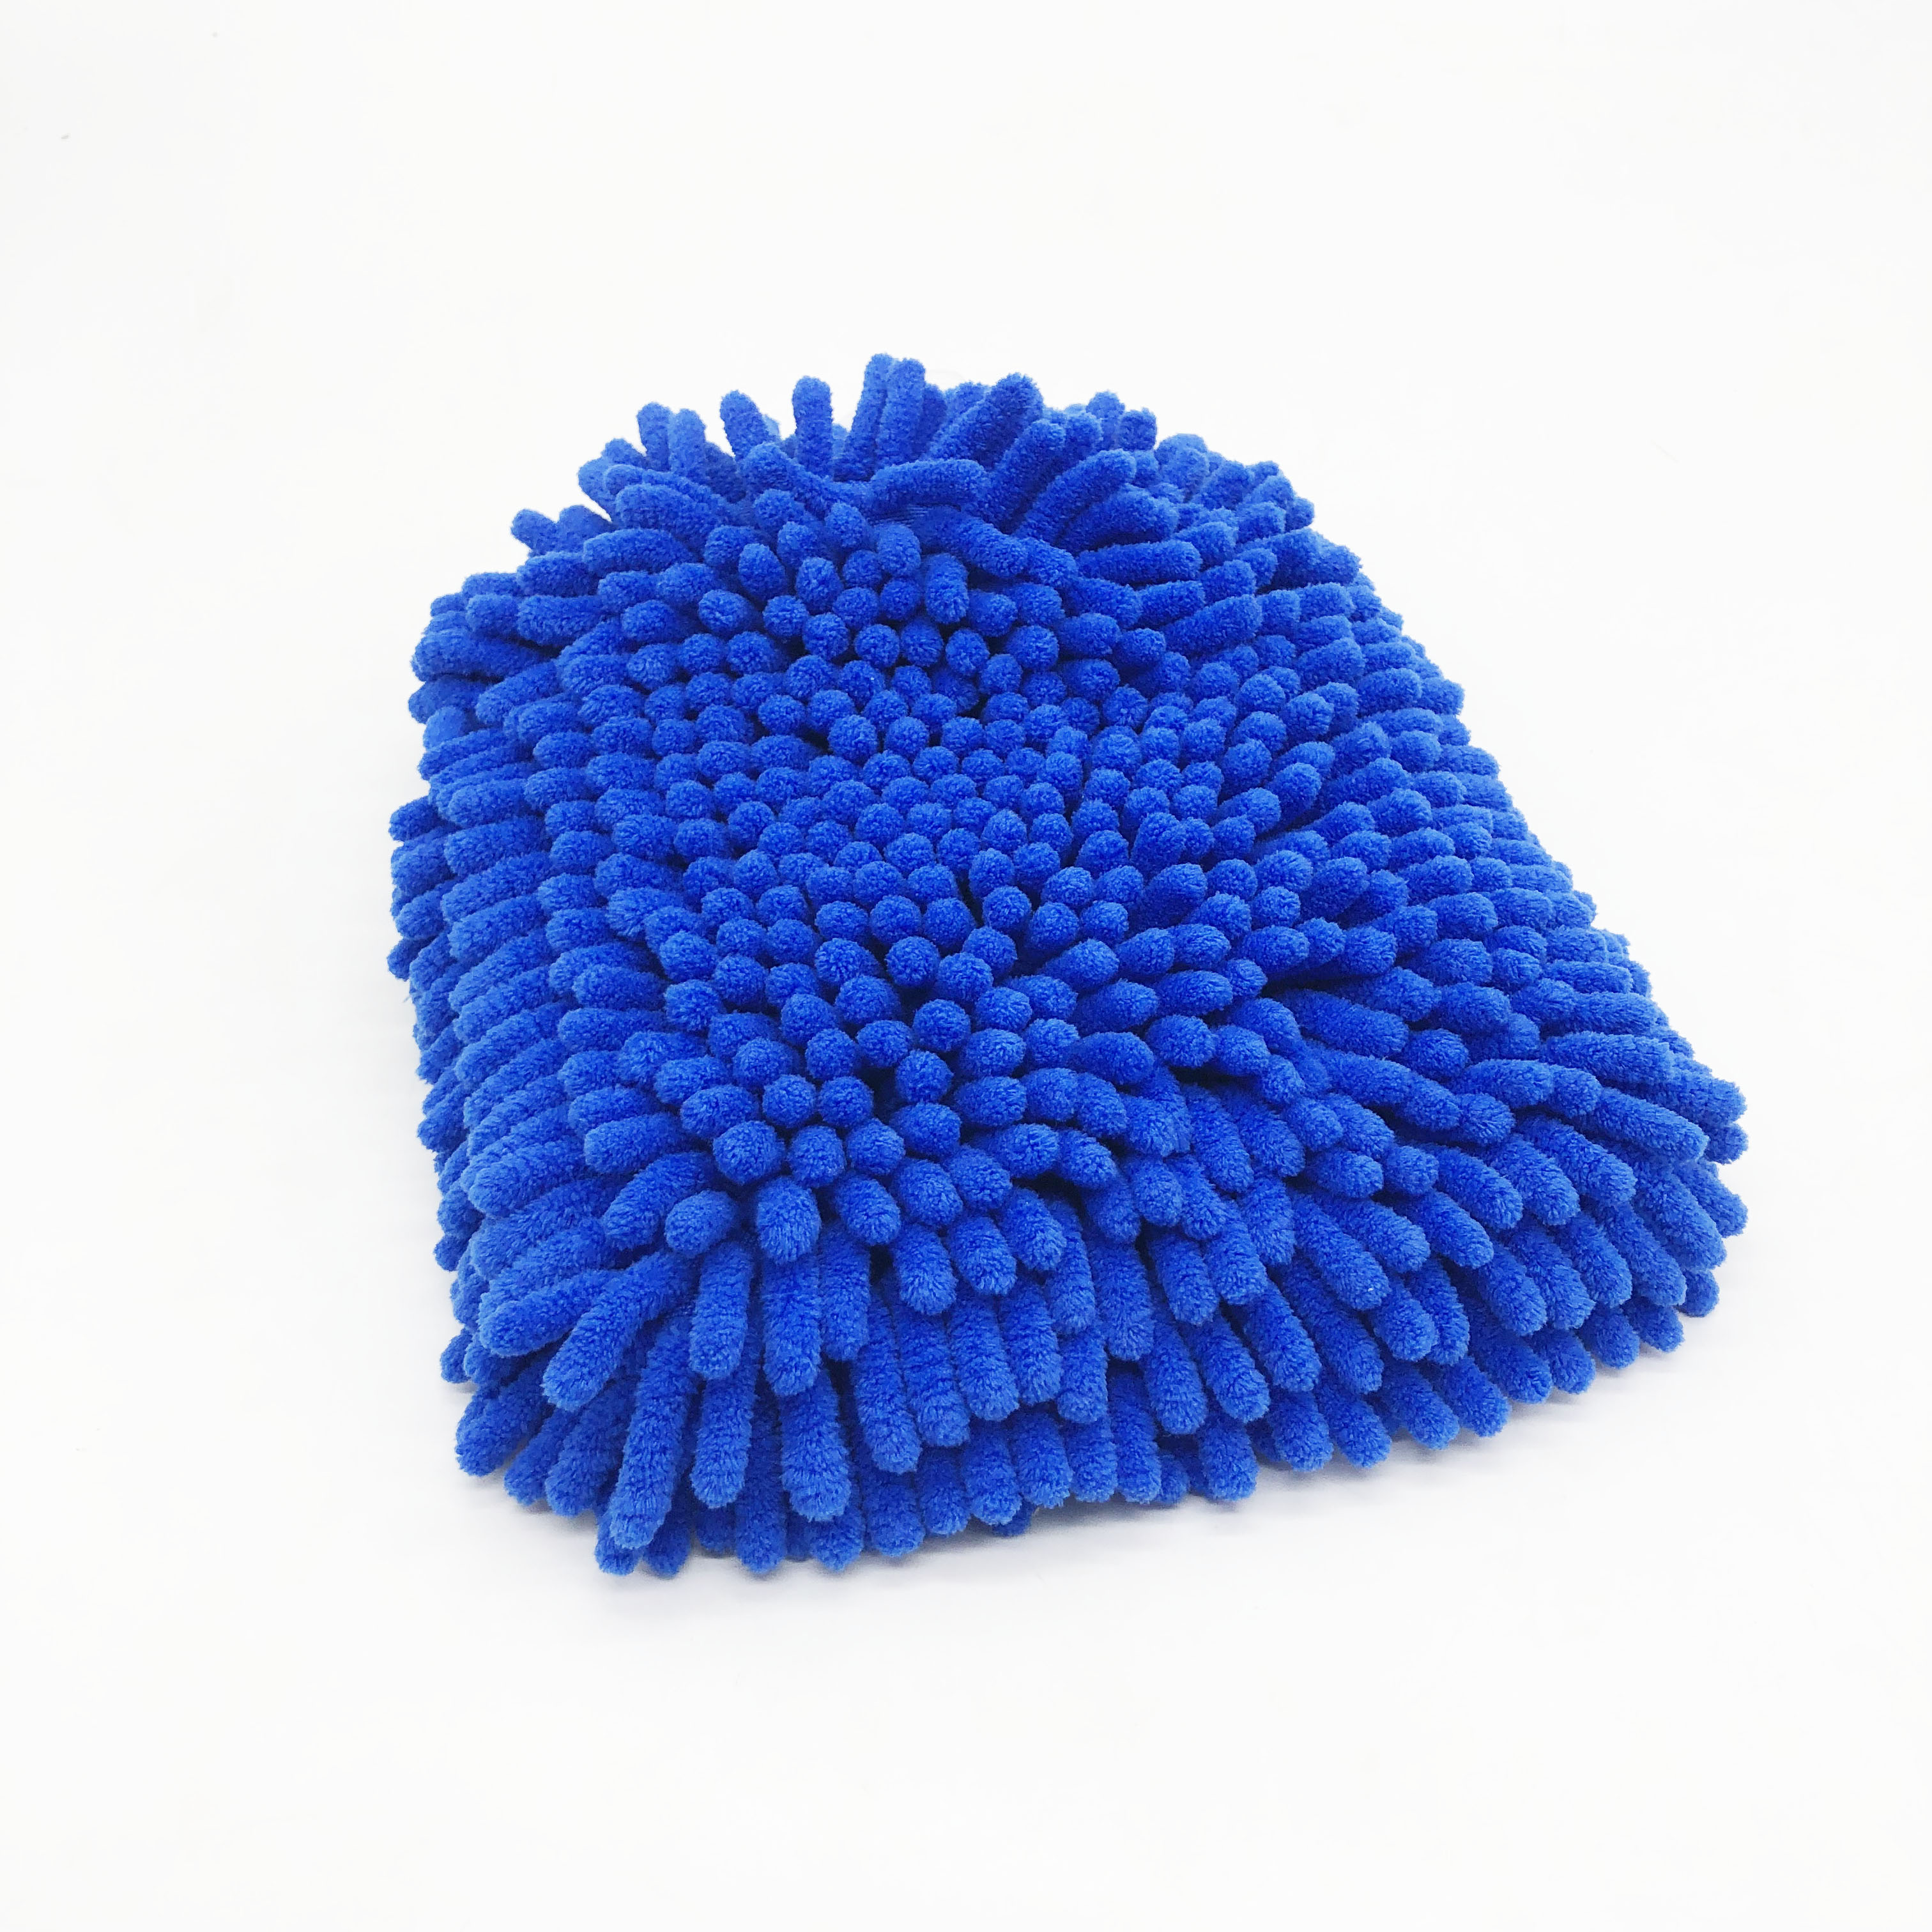 Absorbent Microfiber Material Washing Mitt Scratch-free Blue Wash Gloves for Car Cleaning